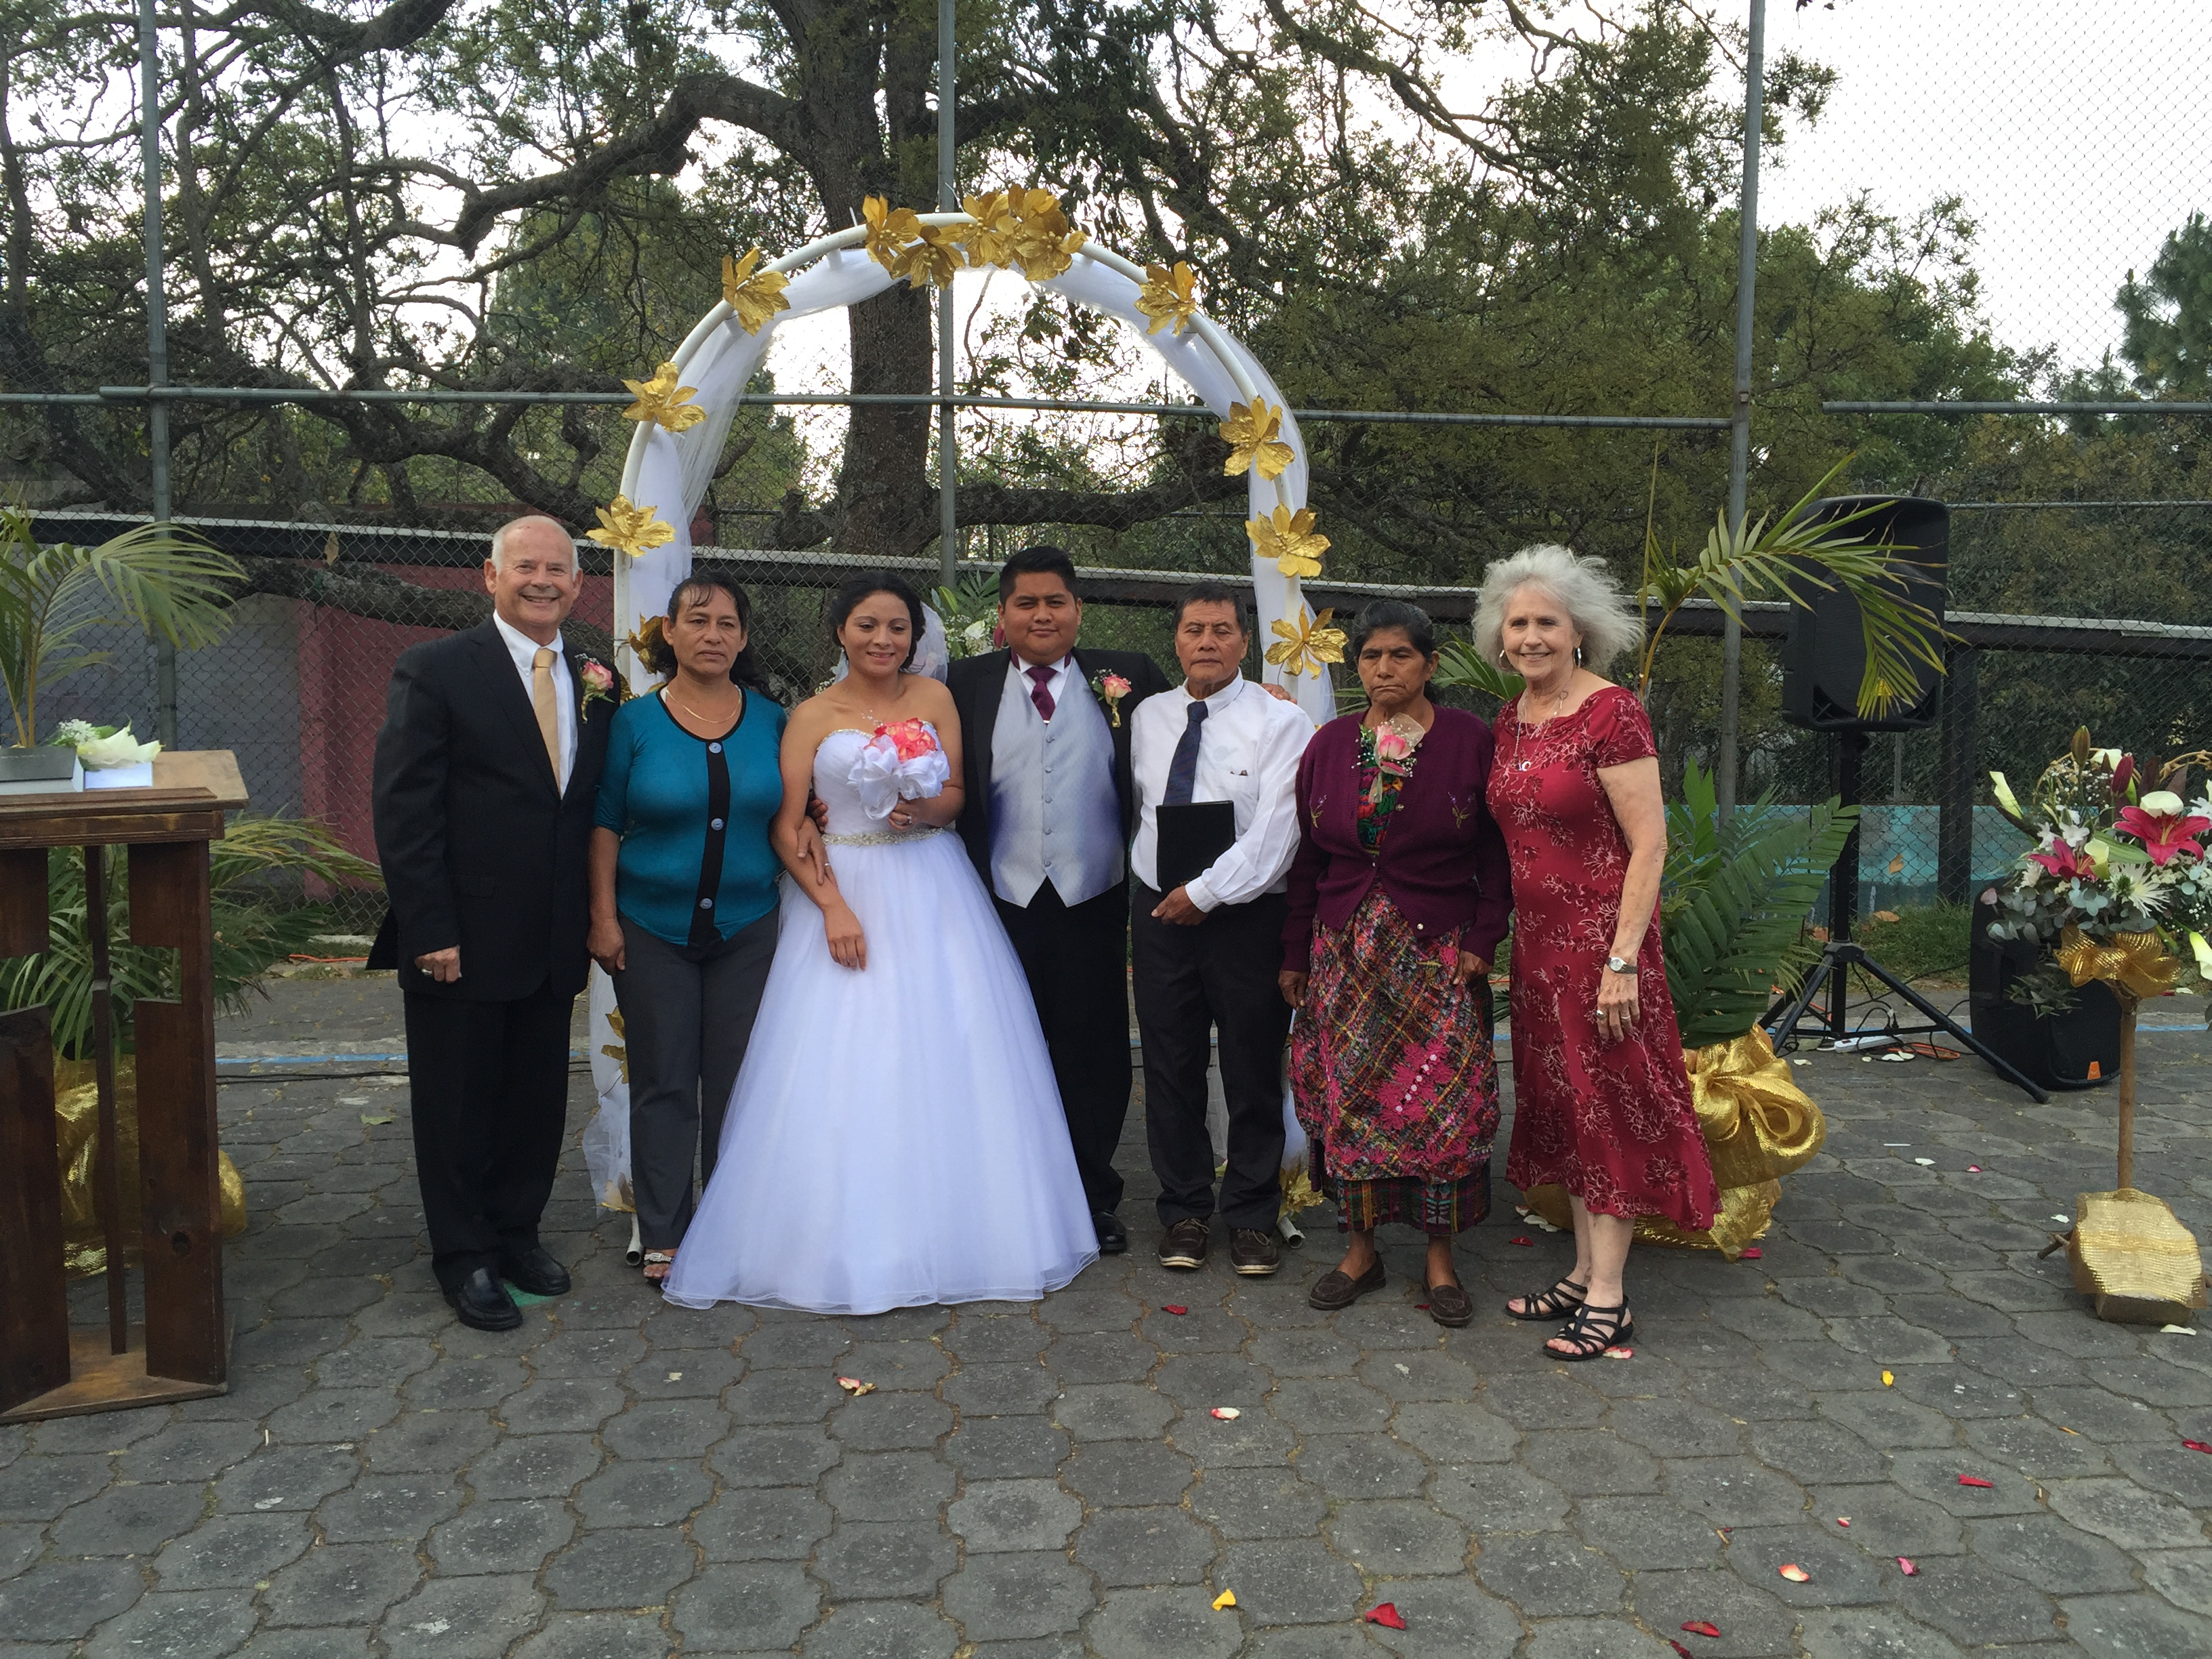 The parents with Jacob and Ana Ruth